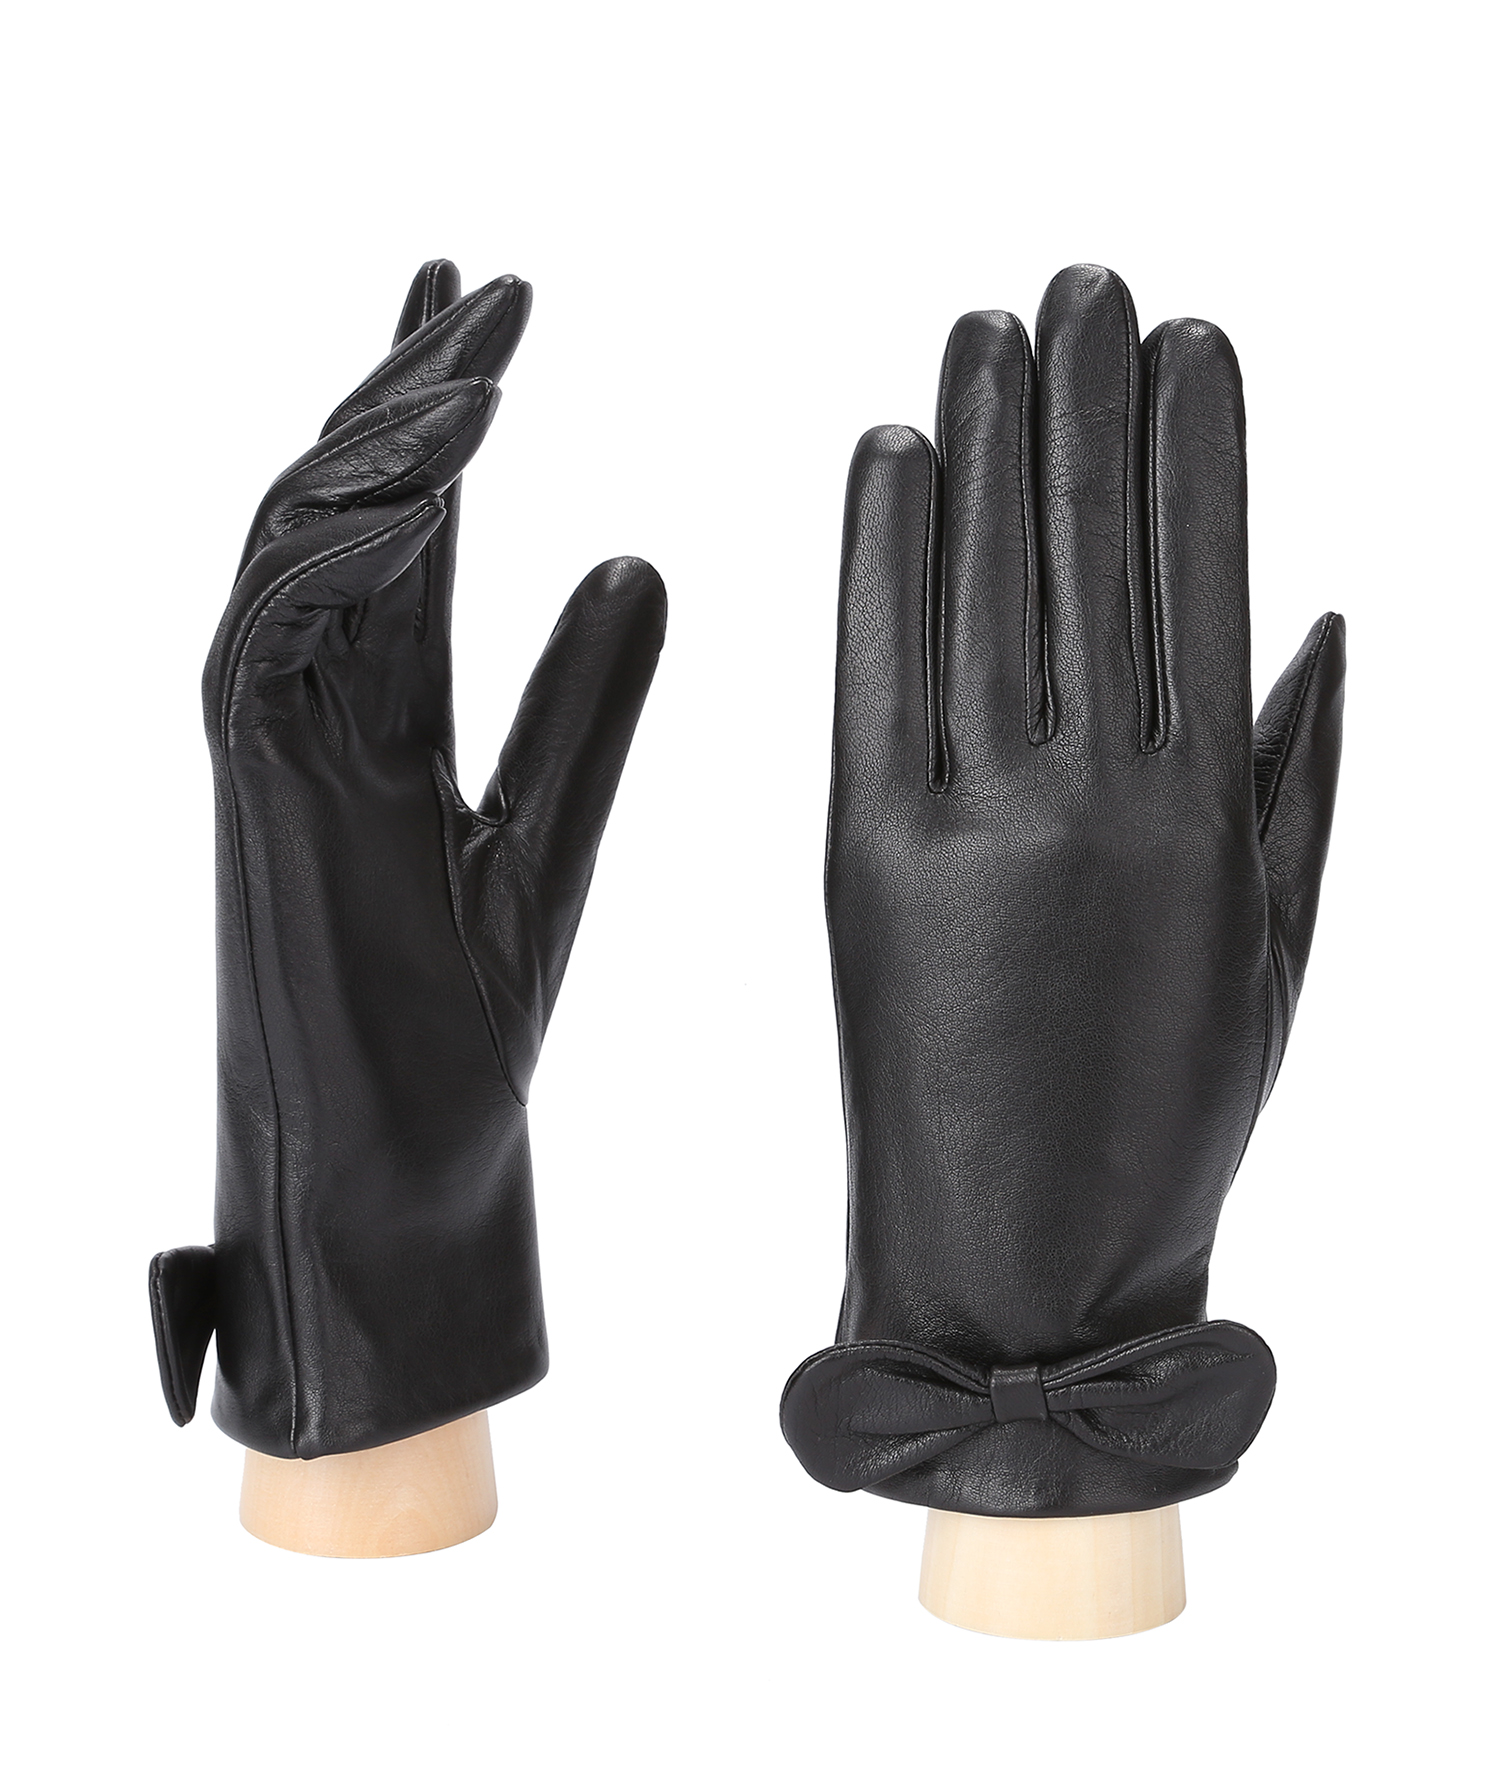 MoDA Women's Ms. Copenhagen Genuine Leather Fully Lined Winter Gloves C0135 Black